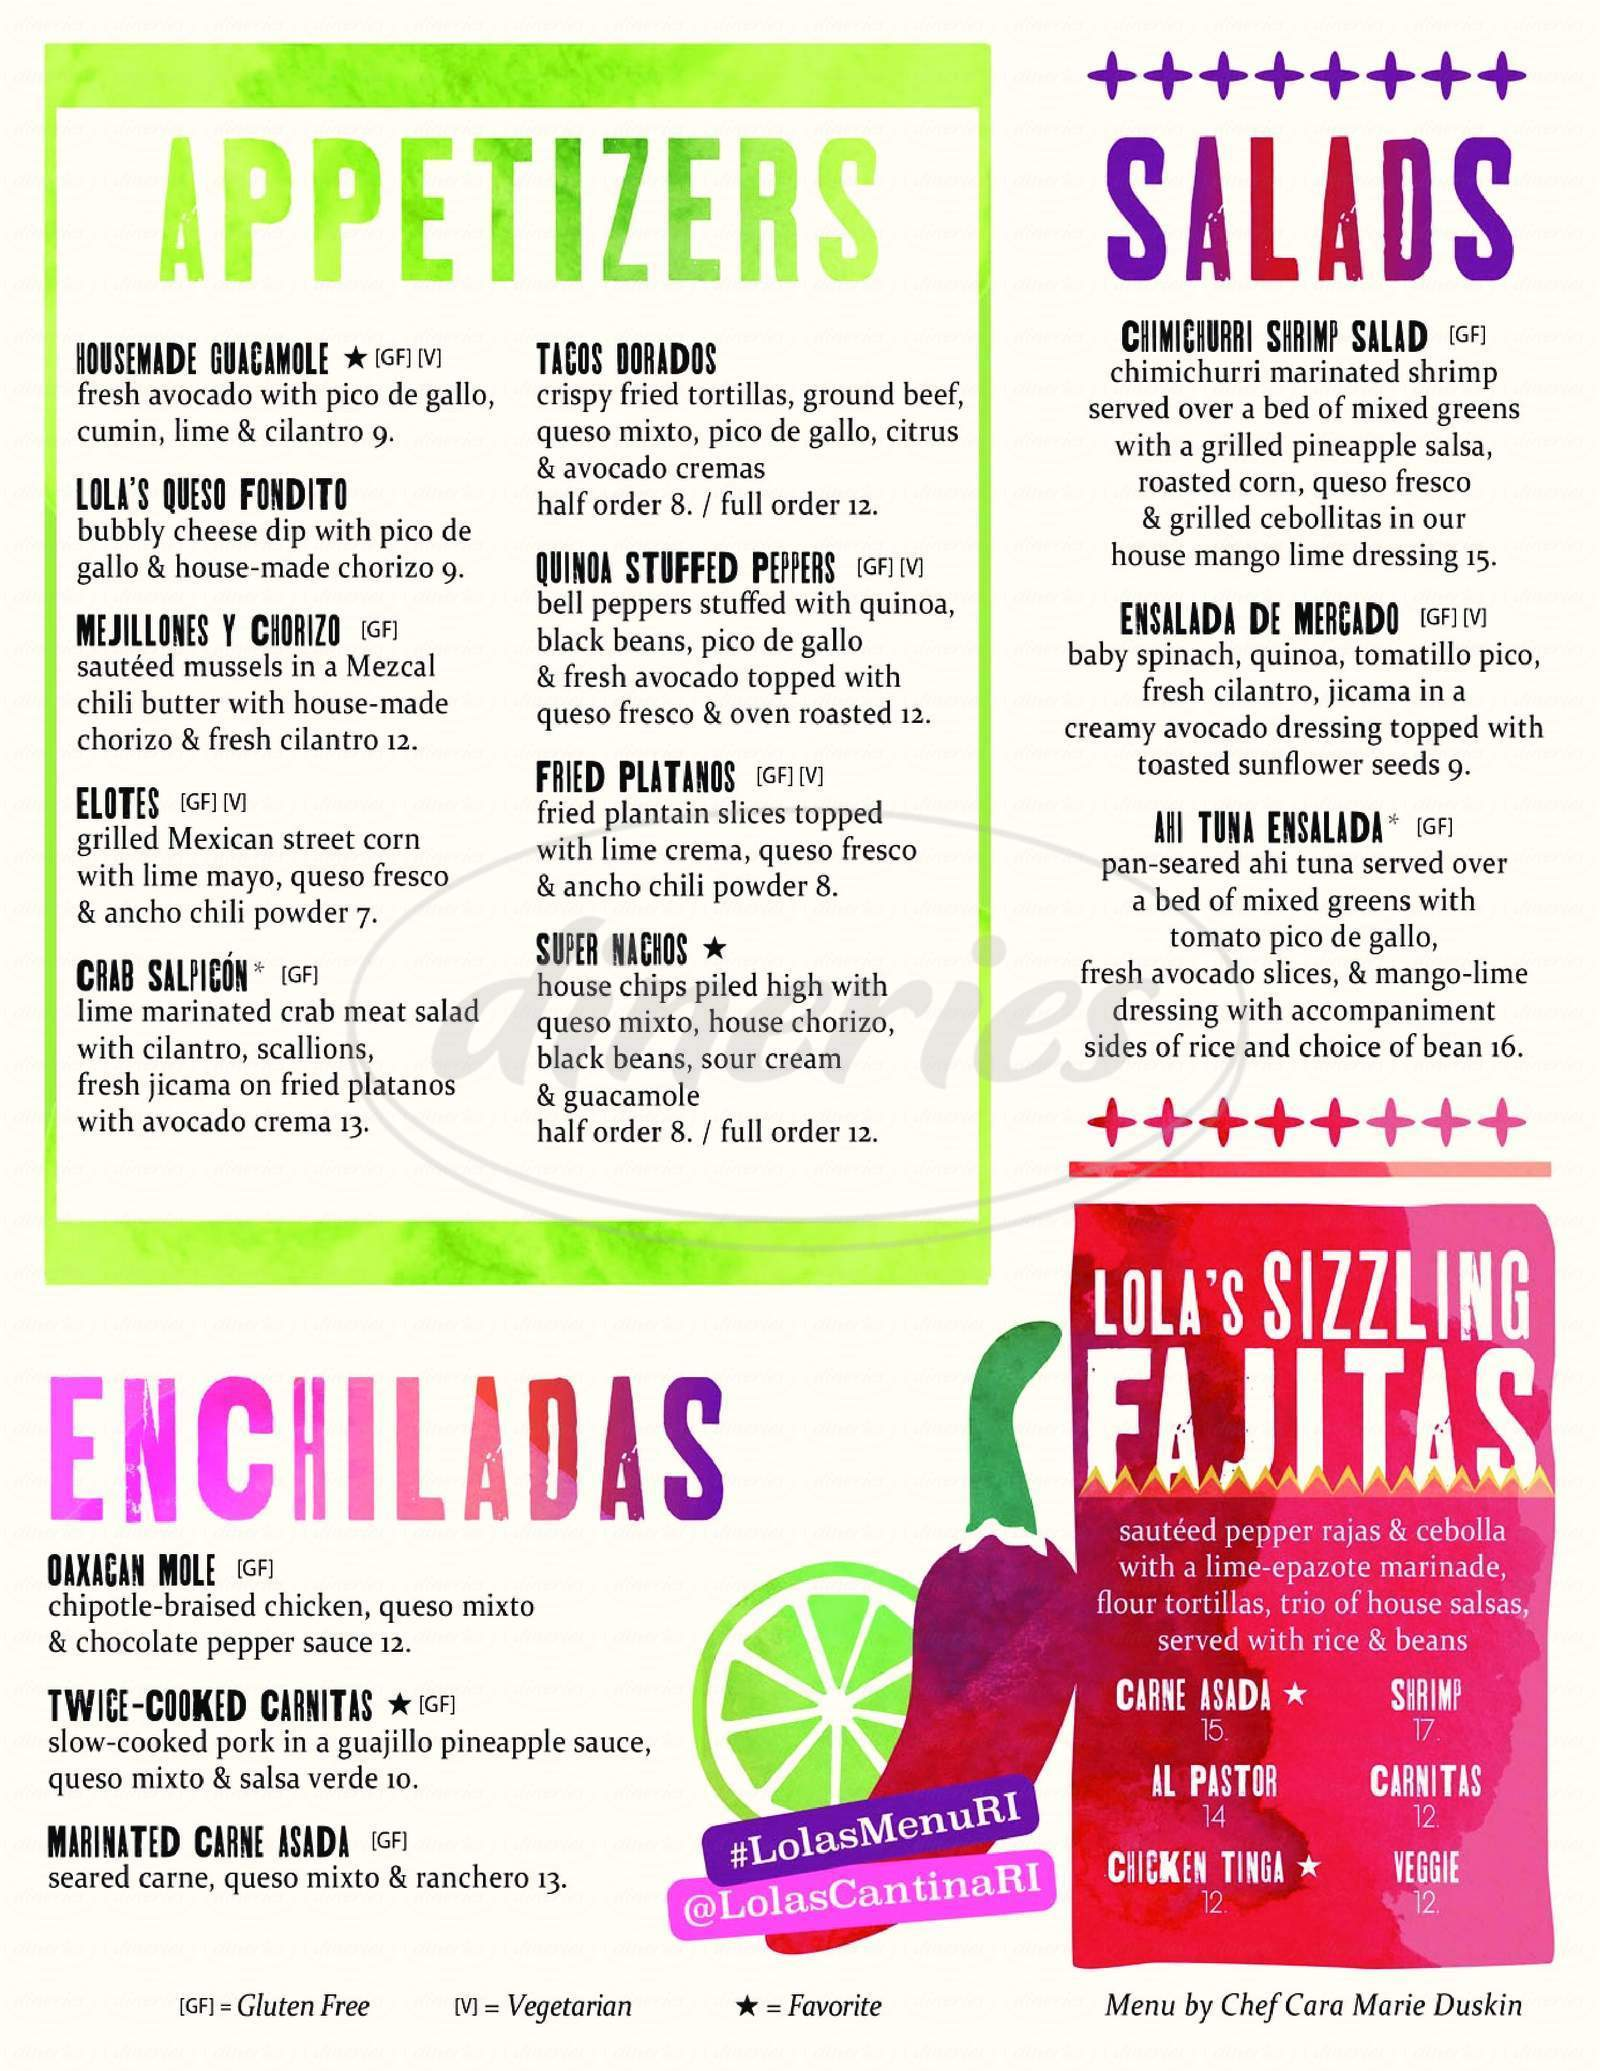 menu for Lola's Tequila Bar & Cantina